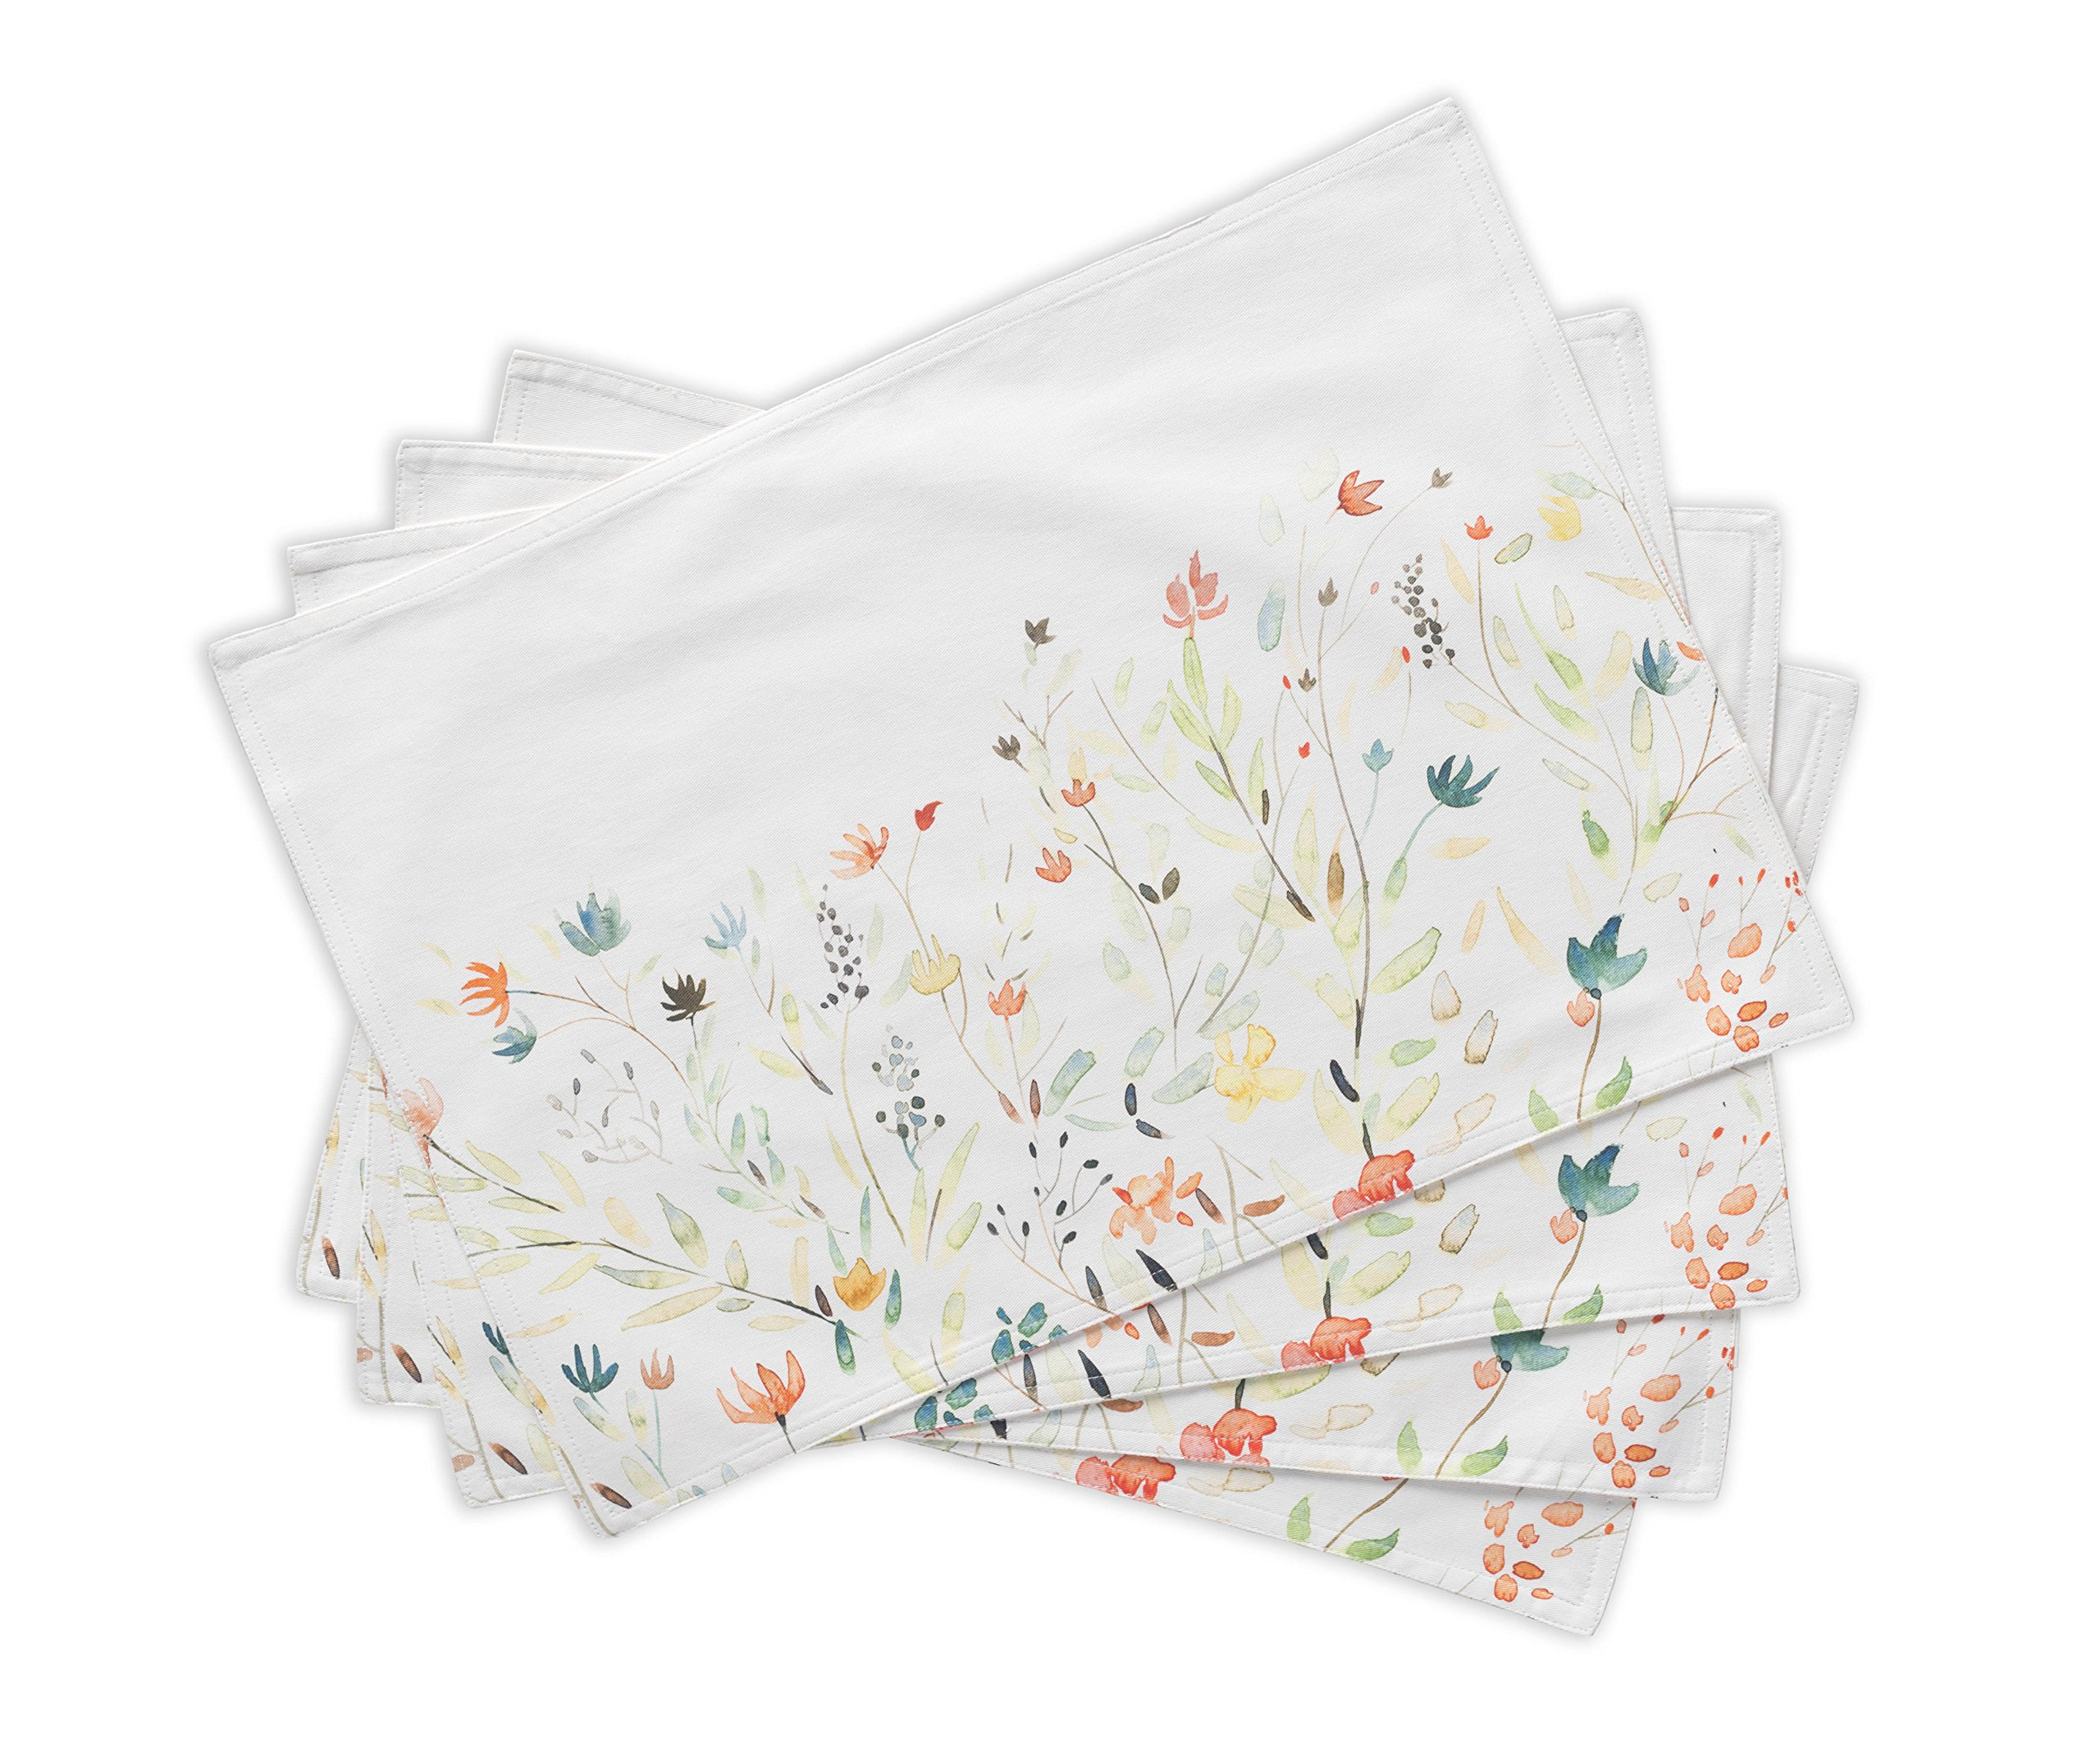 Maison d' Hermine Colmar 100% Cotton Set of 4 Placemats 13 Inch by 19 Inch - Designed in Europe. 100% Cotton and machine washable. Package includes - 4 Placemats. - placemats, kitchen-dining-room-table-linens, kitchen-dining-room - 91BQW2wUvuL -